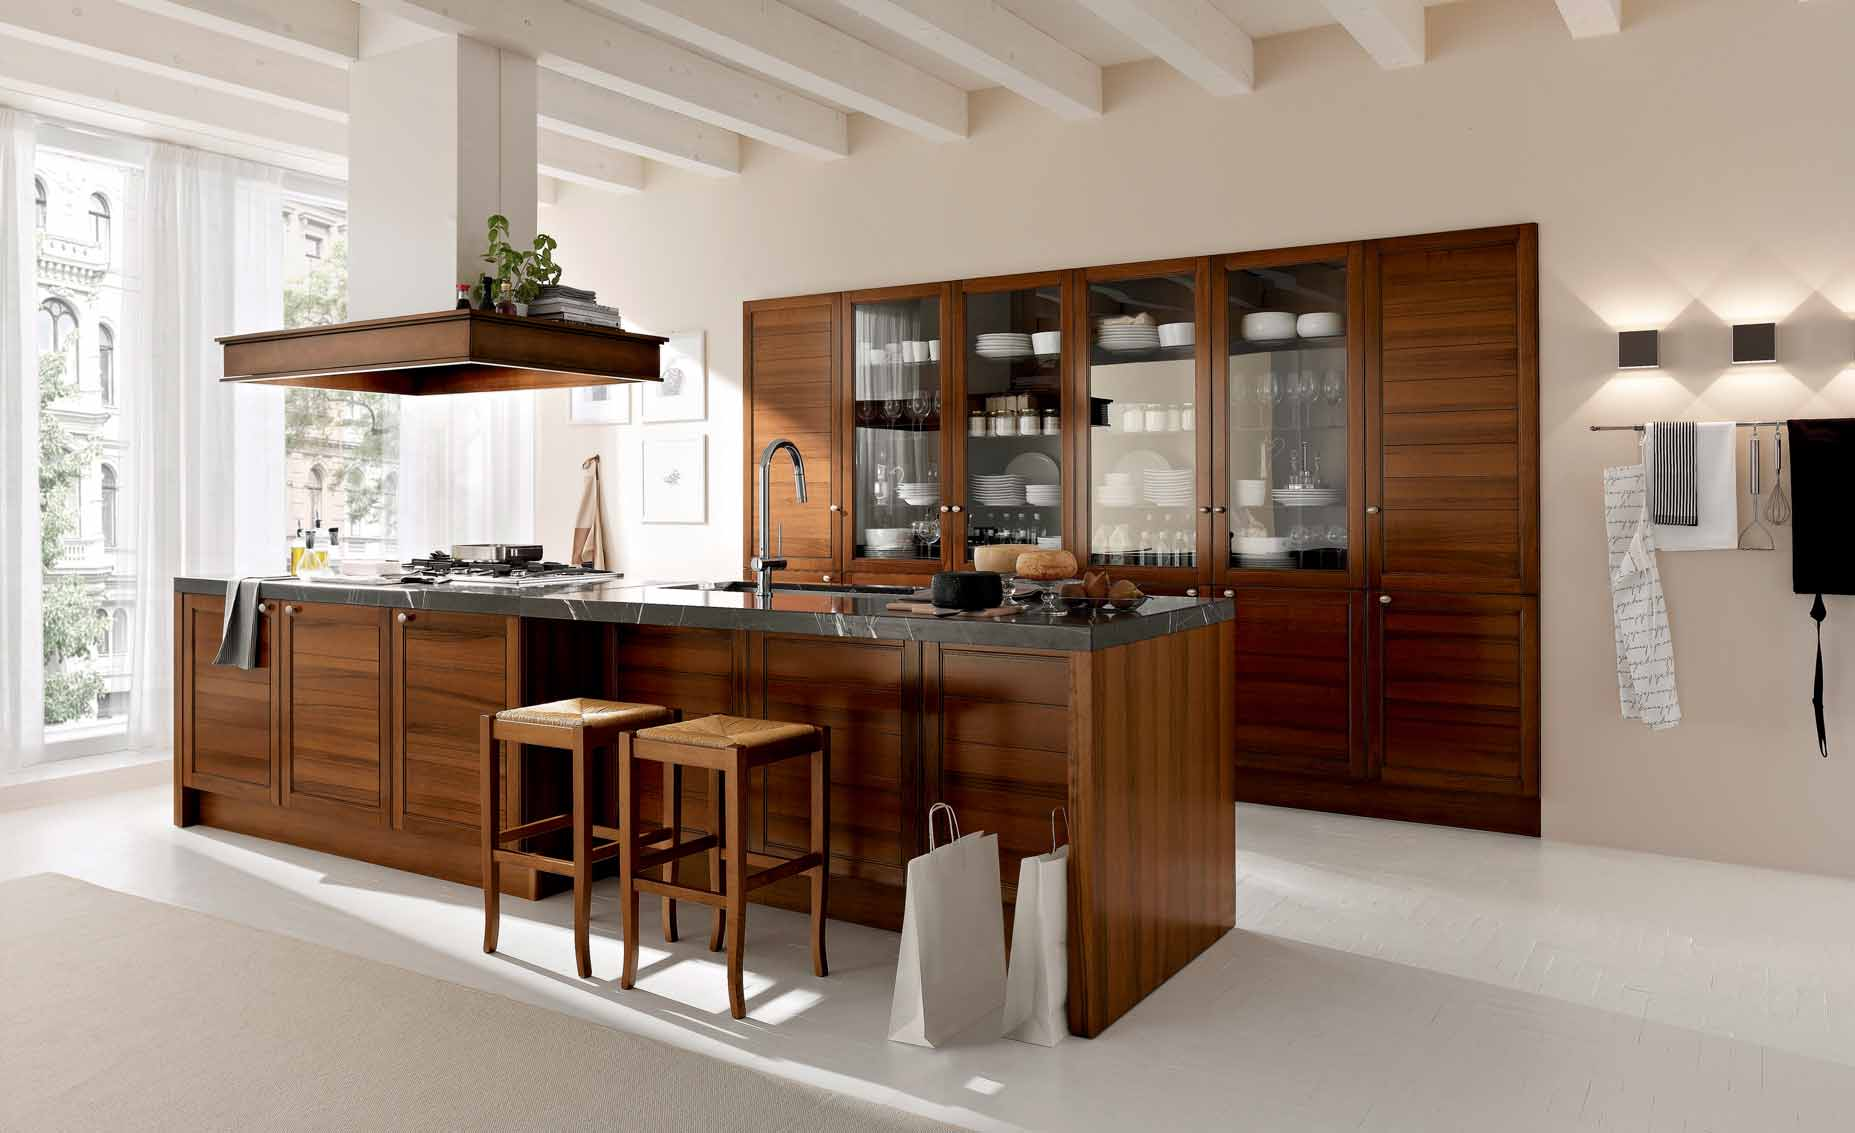 villanova-classic-kitchen-interior